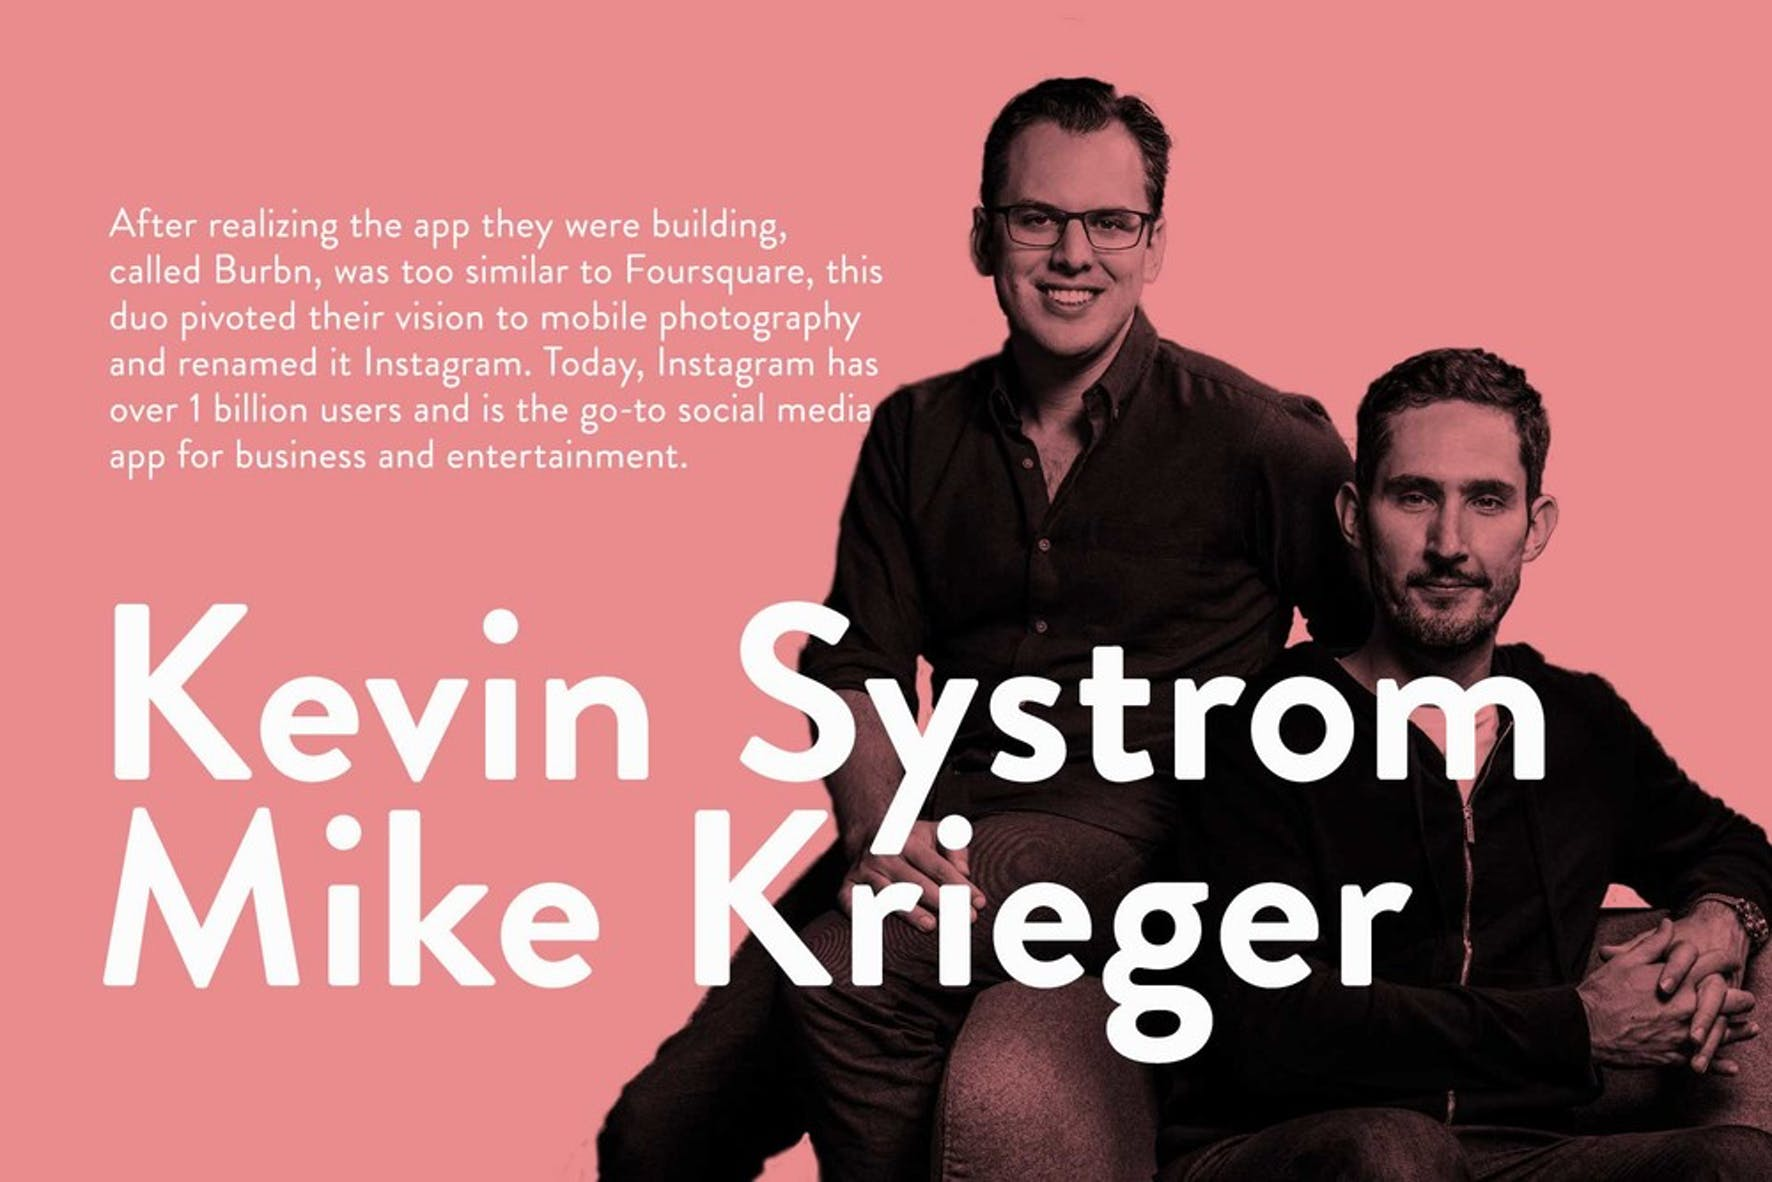 What is a visionary leader? Kevin Systrom and Mike Krieger on being a visionary leader